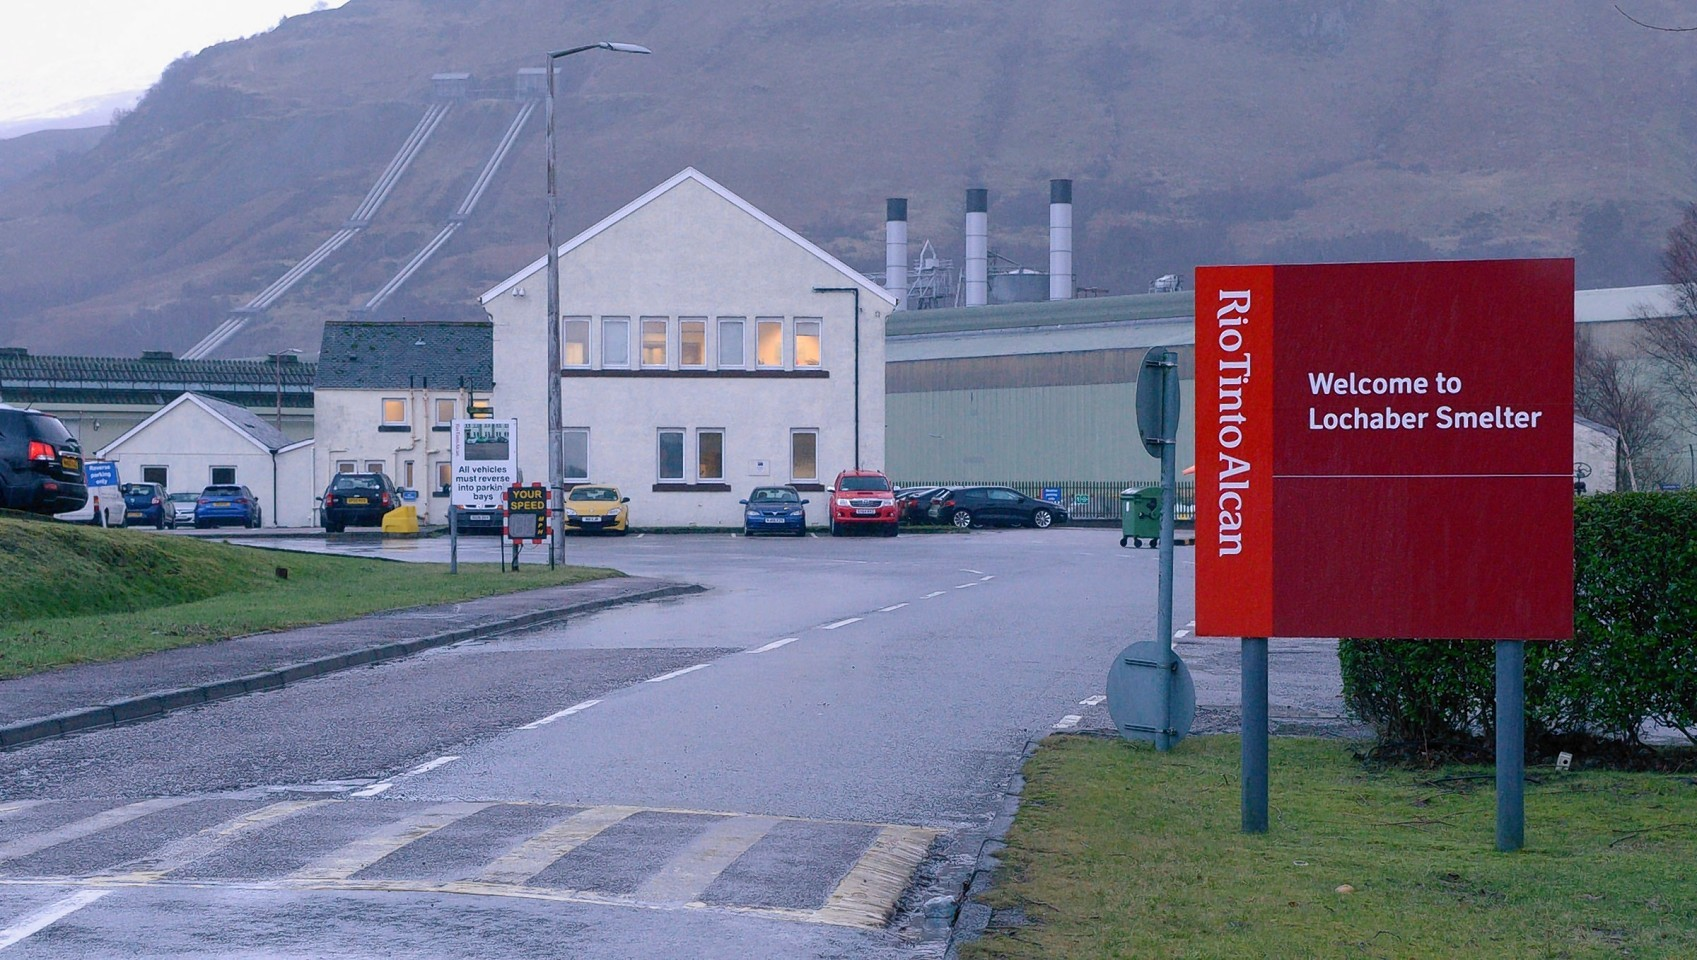 The Lochaber smelter at Fort William